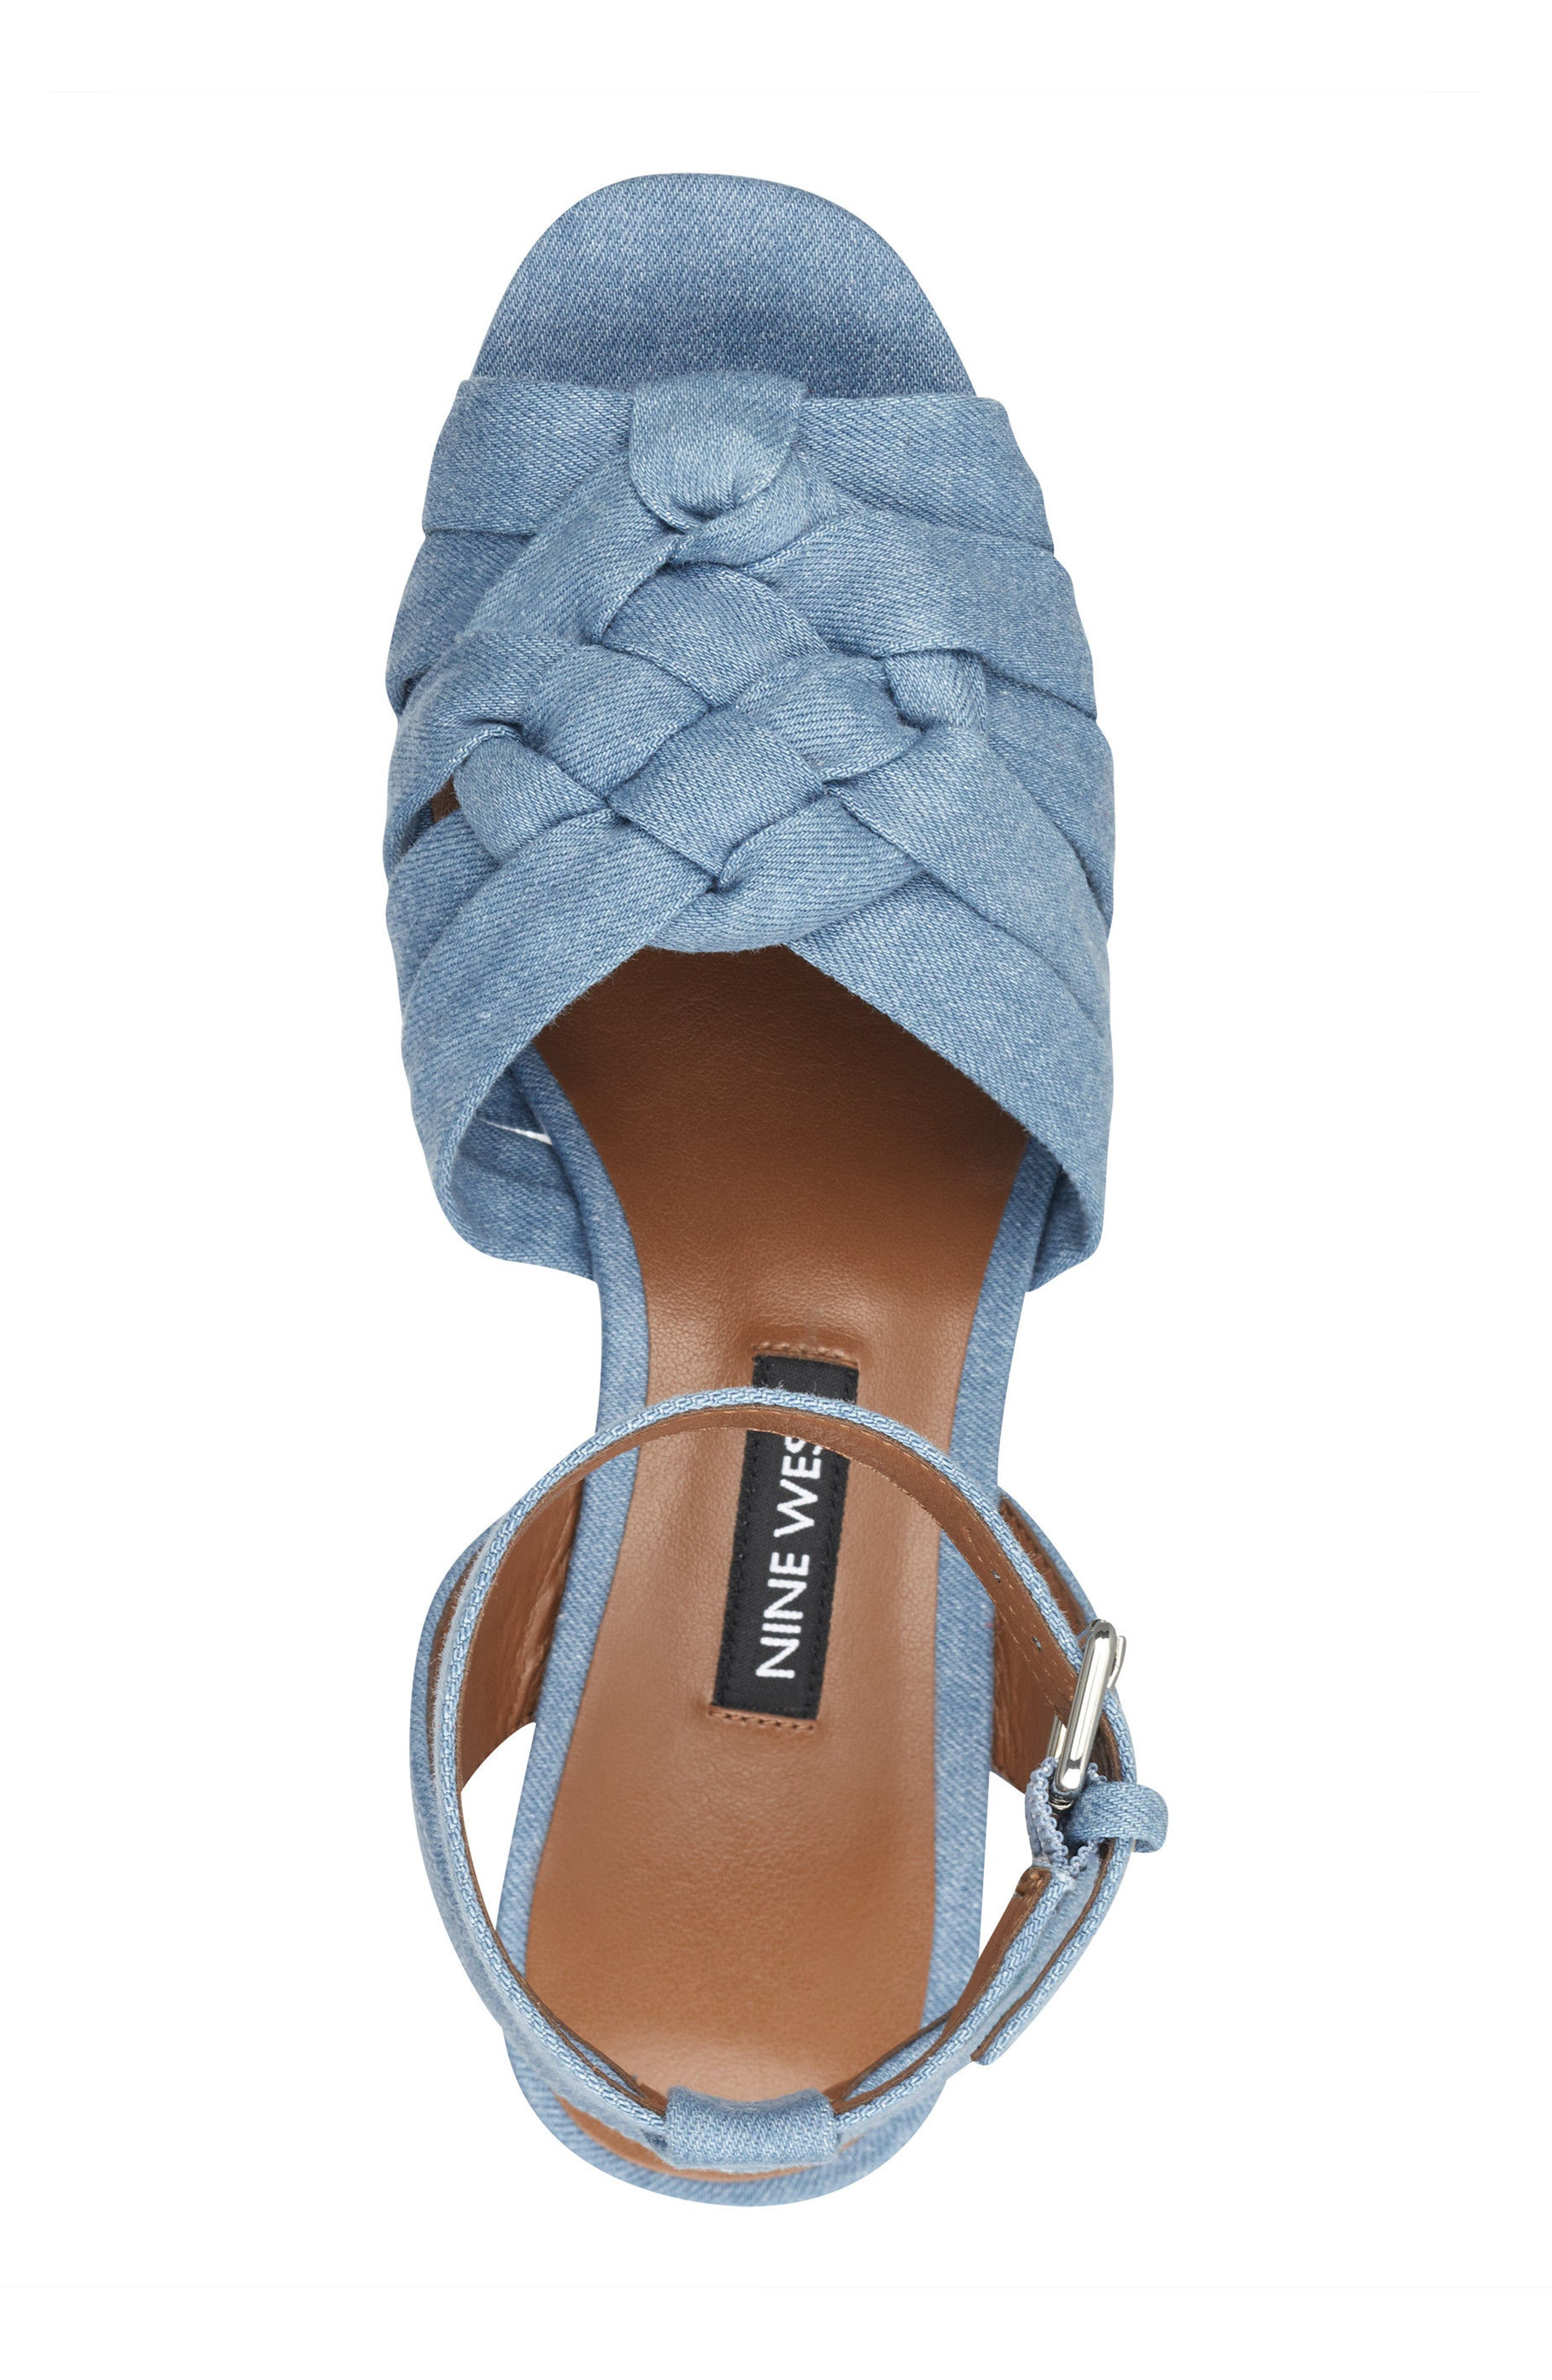 Fetuchini Platform Sandal,                             Alternate thumbnail 5, color,                             Light Blue Denim